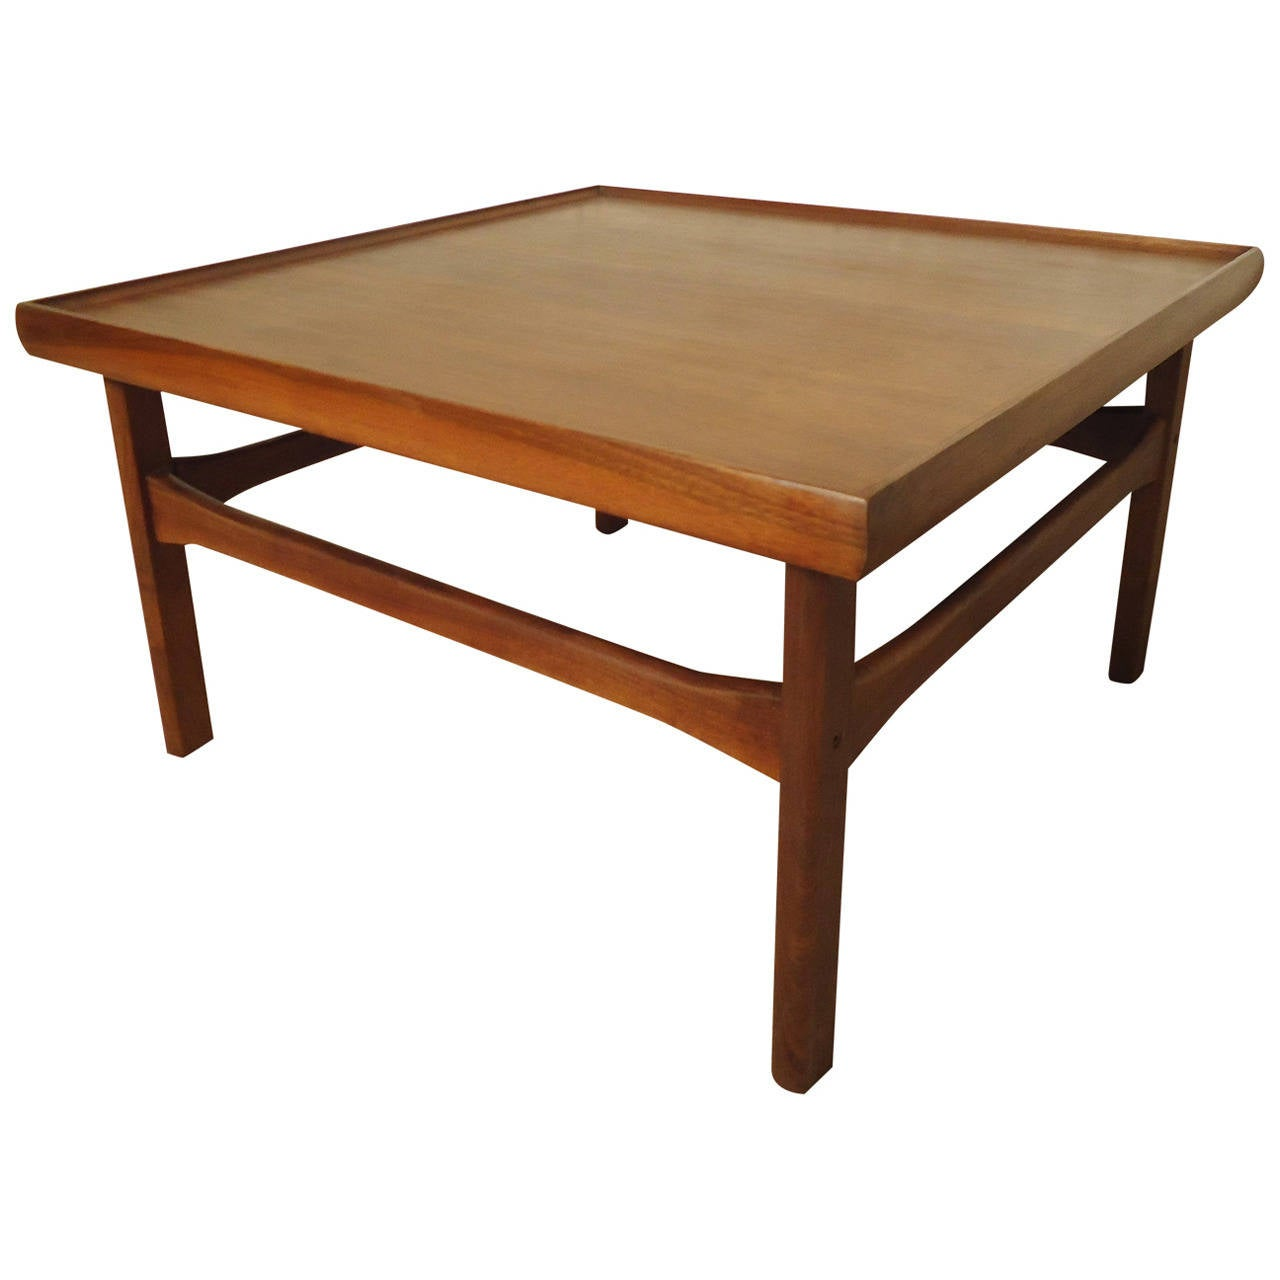 Mid century modern square coffee table for sale at 1stdibs for Modern coffee table for sale